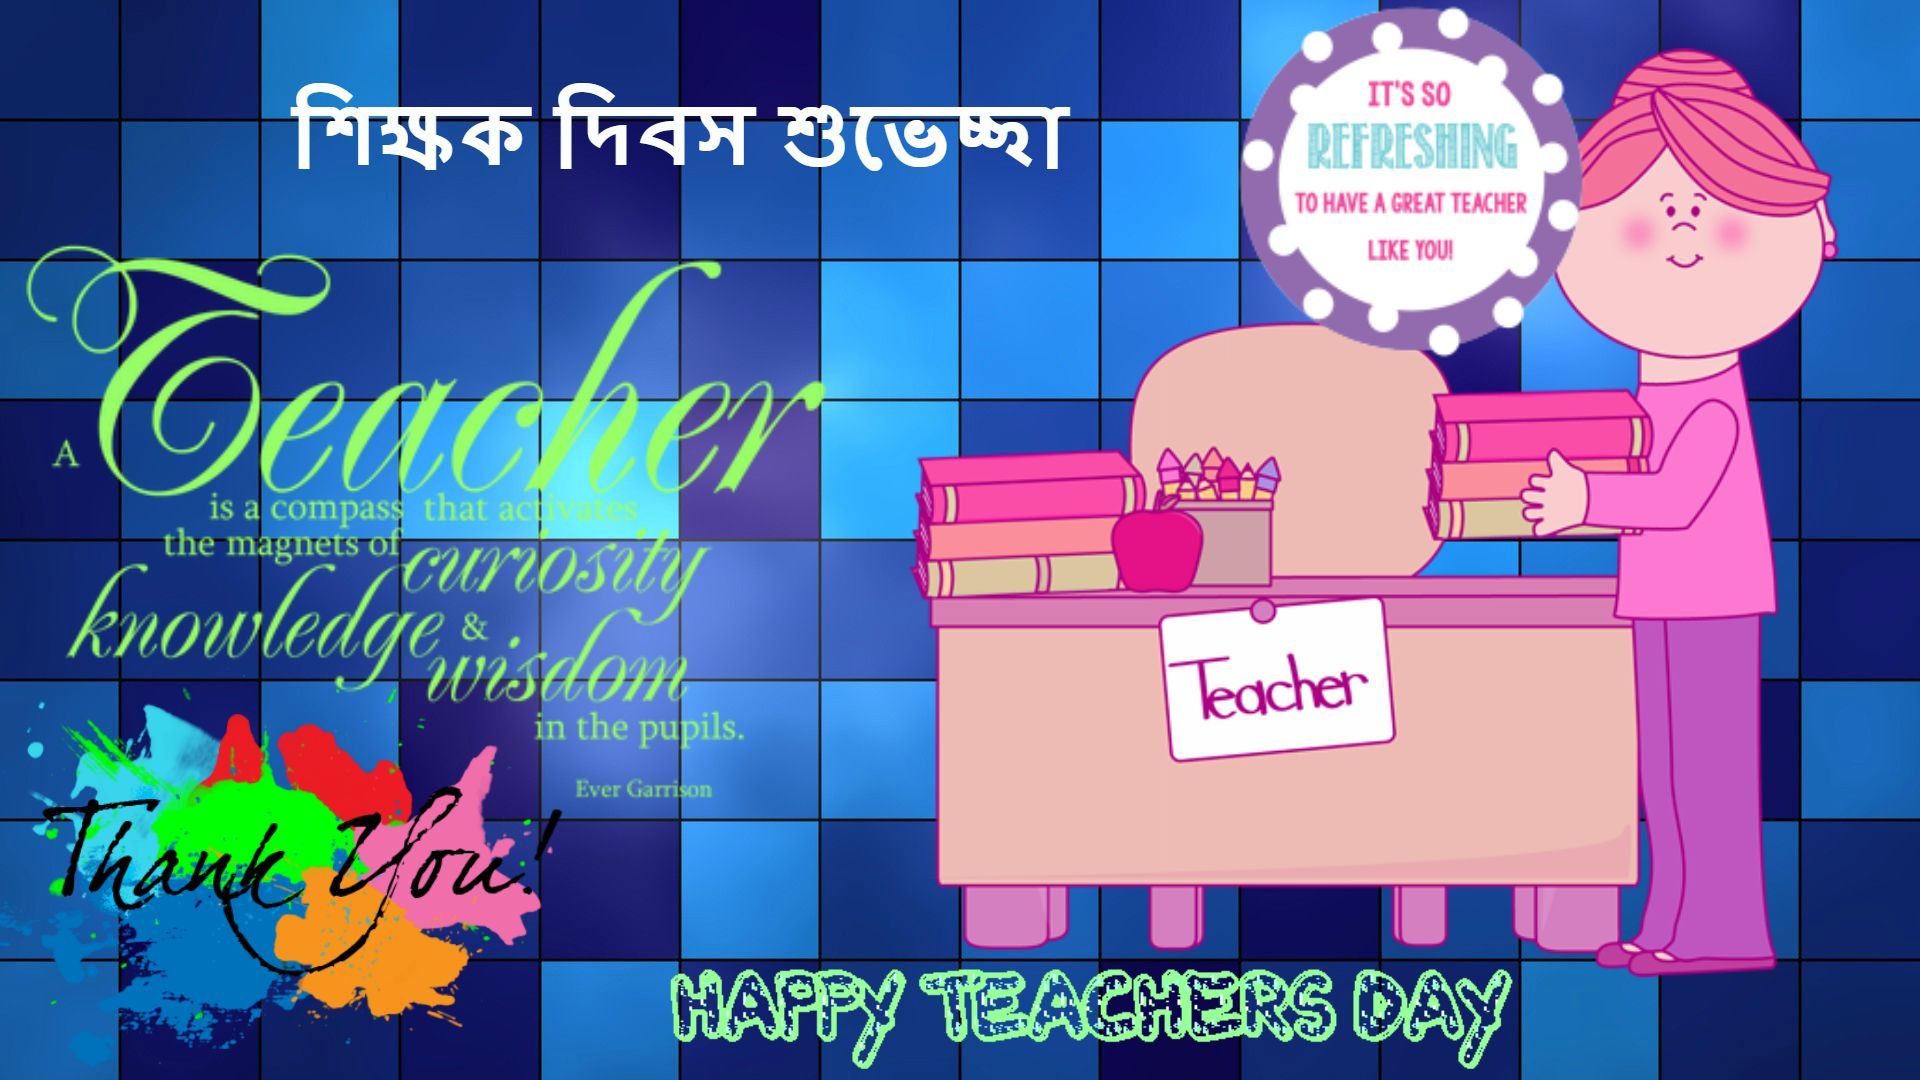 Teachers day wishes in bengali - Best Greetings Quotes 2016